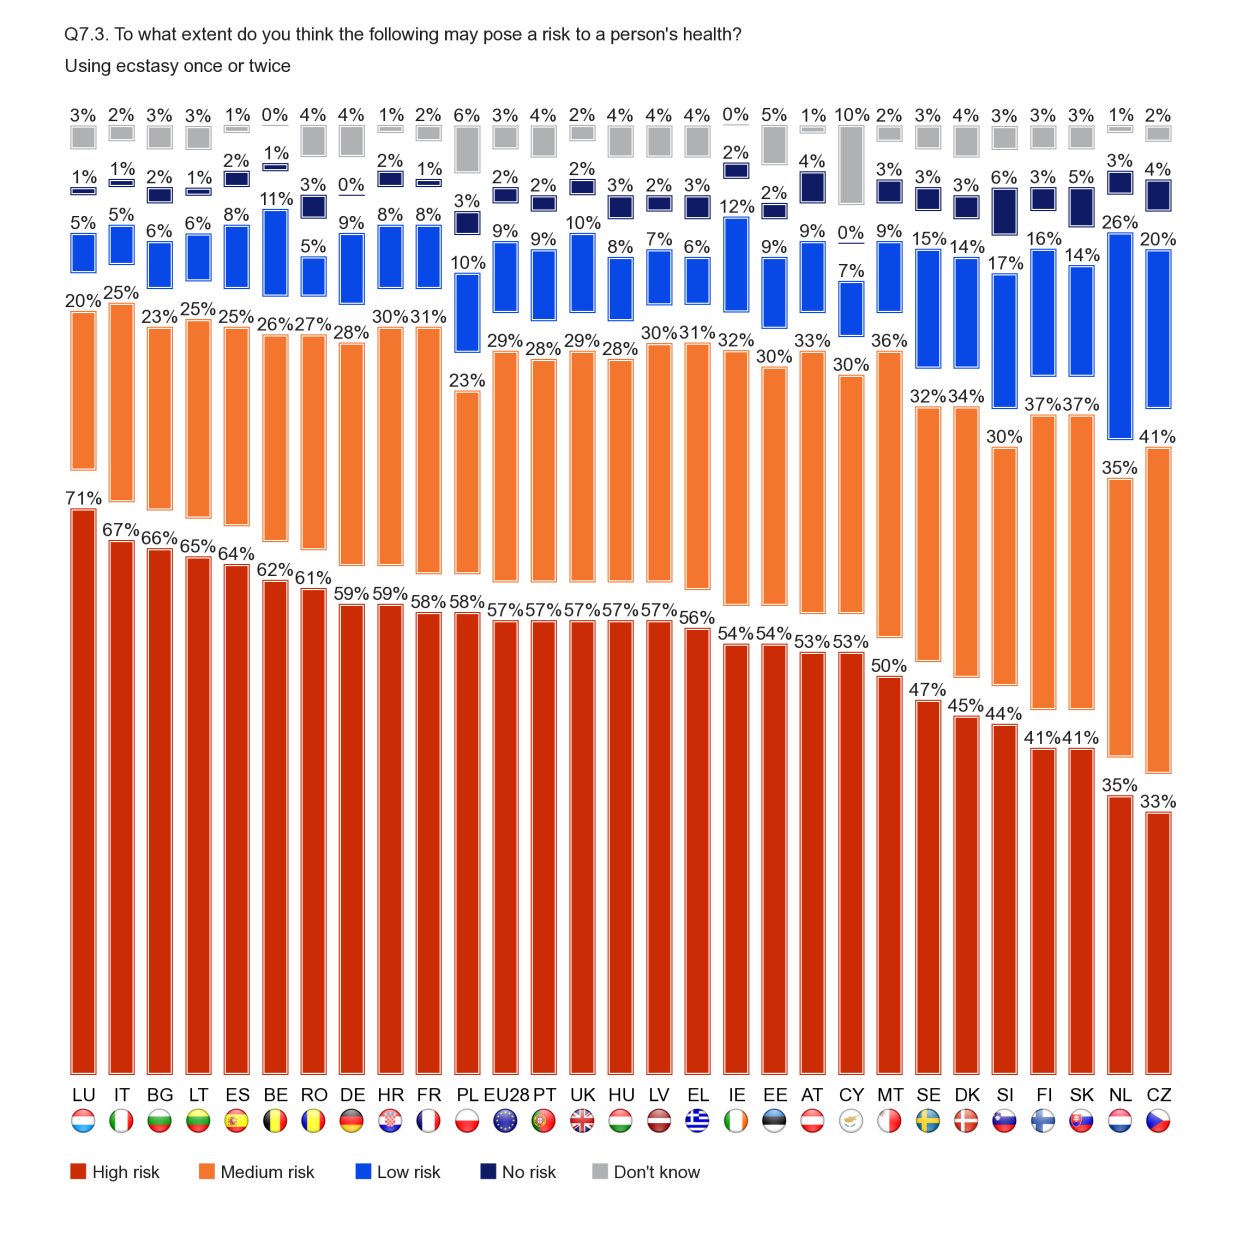 FLASH EUROBAROMETER At least half of the respondents in 21 Member States think that using ecstasy once or twice carries a high risk to health, with those in Luxembourg (71%), Italy (67%) and Bulgaria